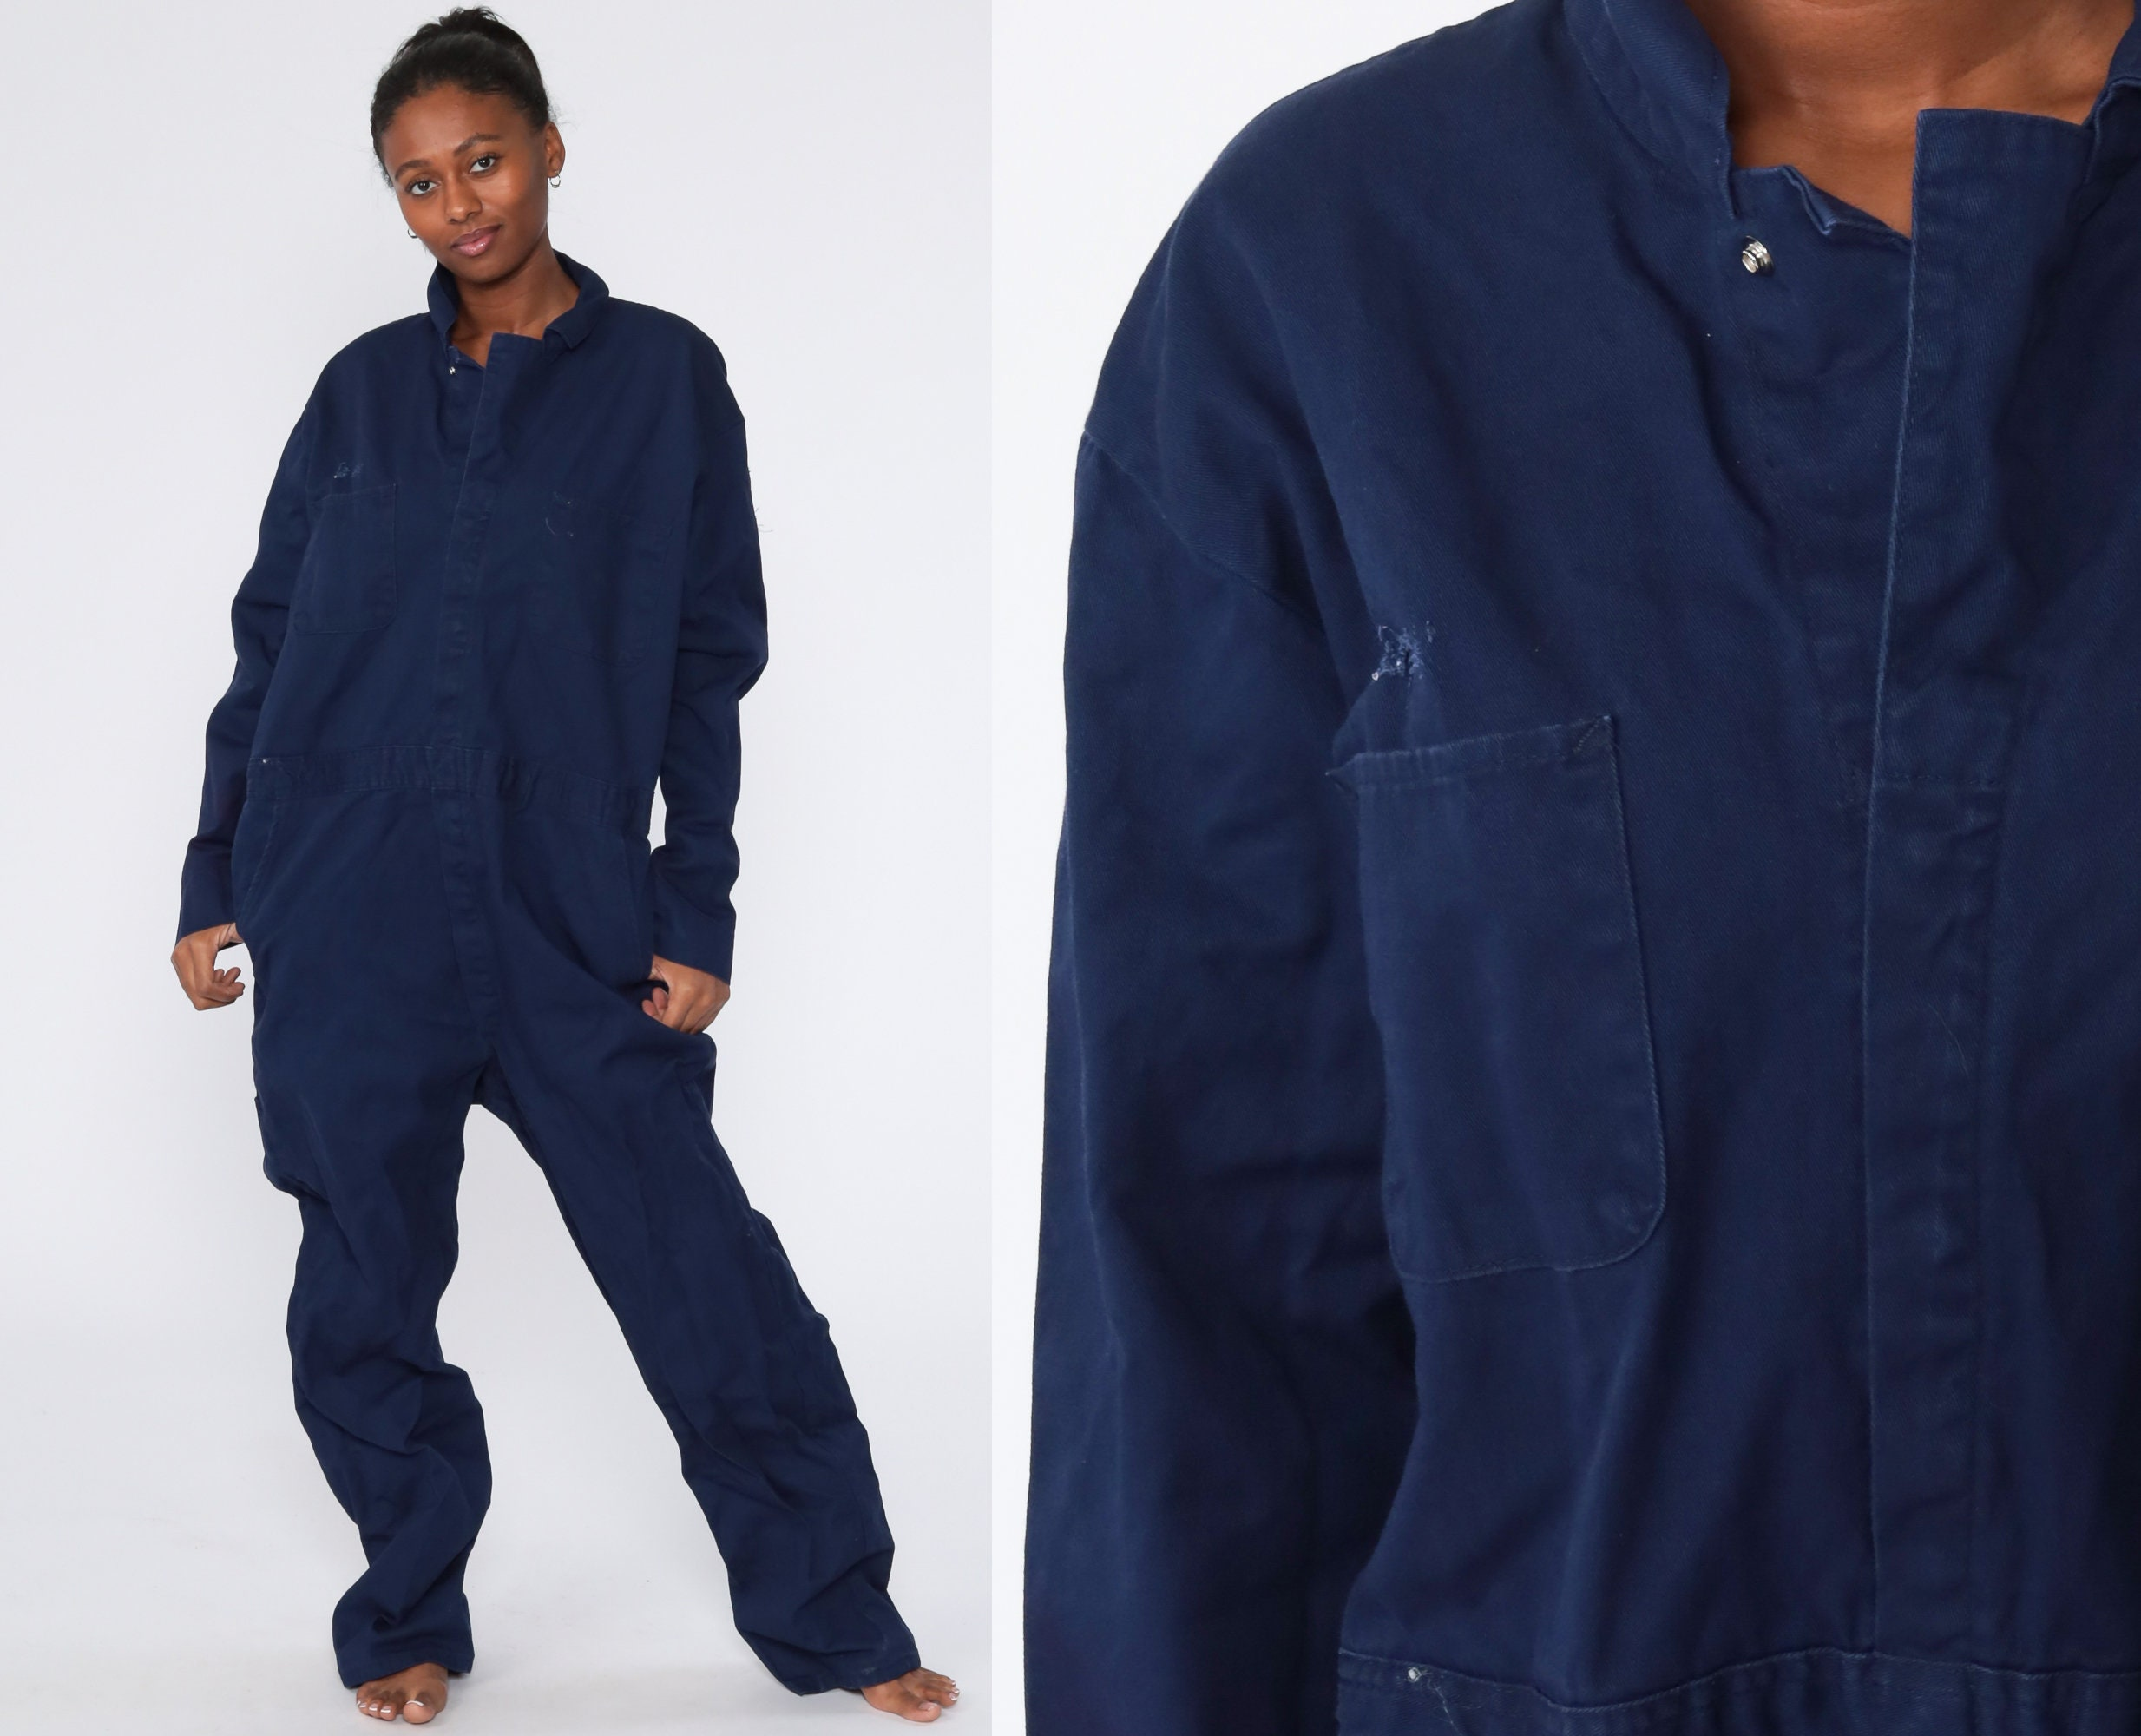 1980/'s Men/'s 48R Vintage Coveralls Boiler Suit Made in USA